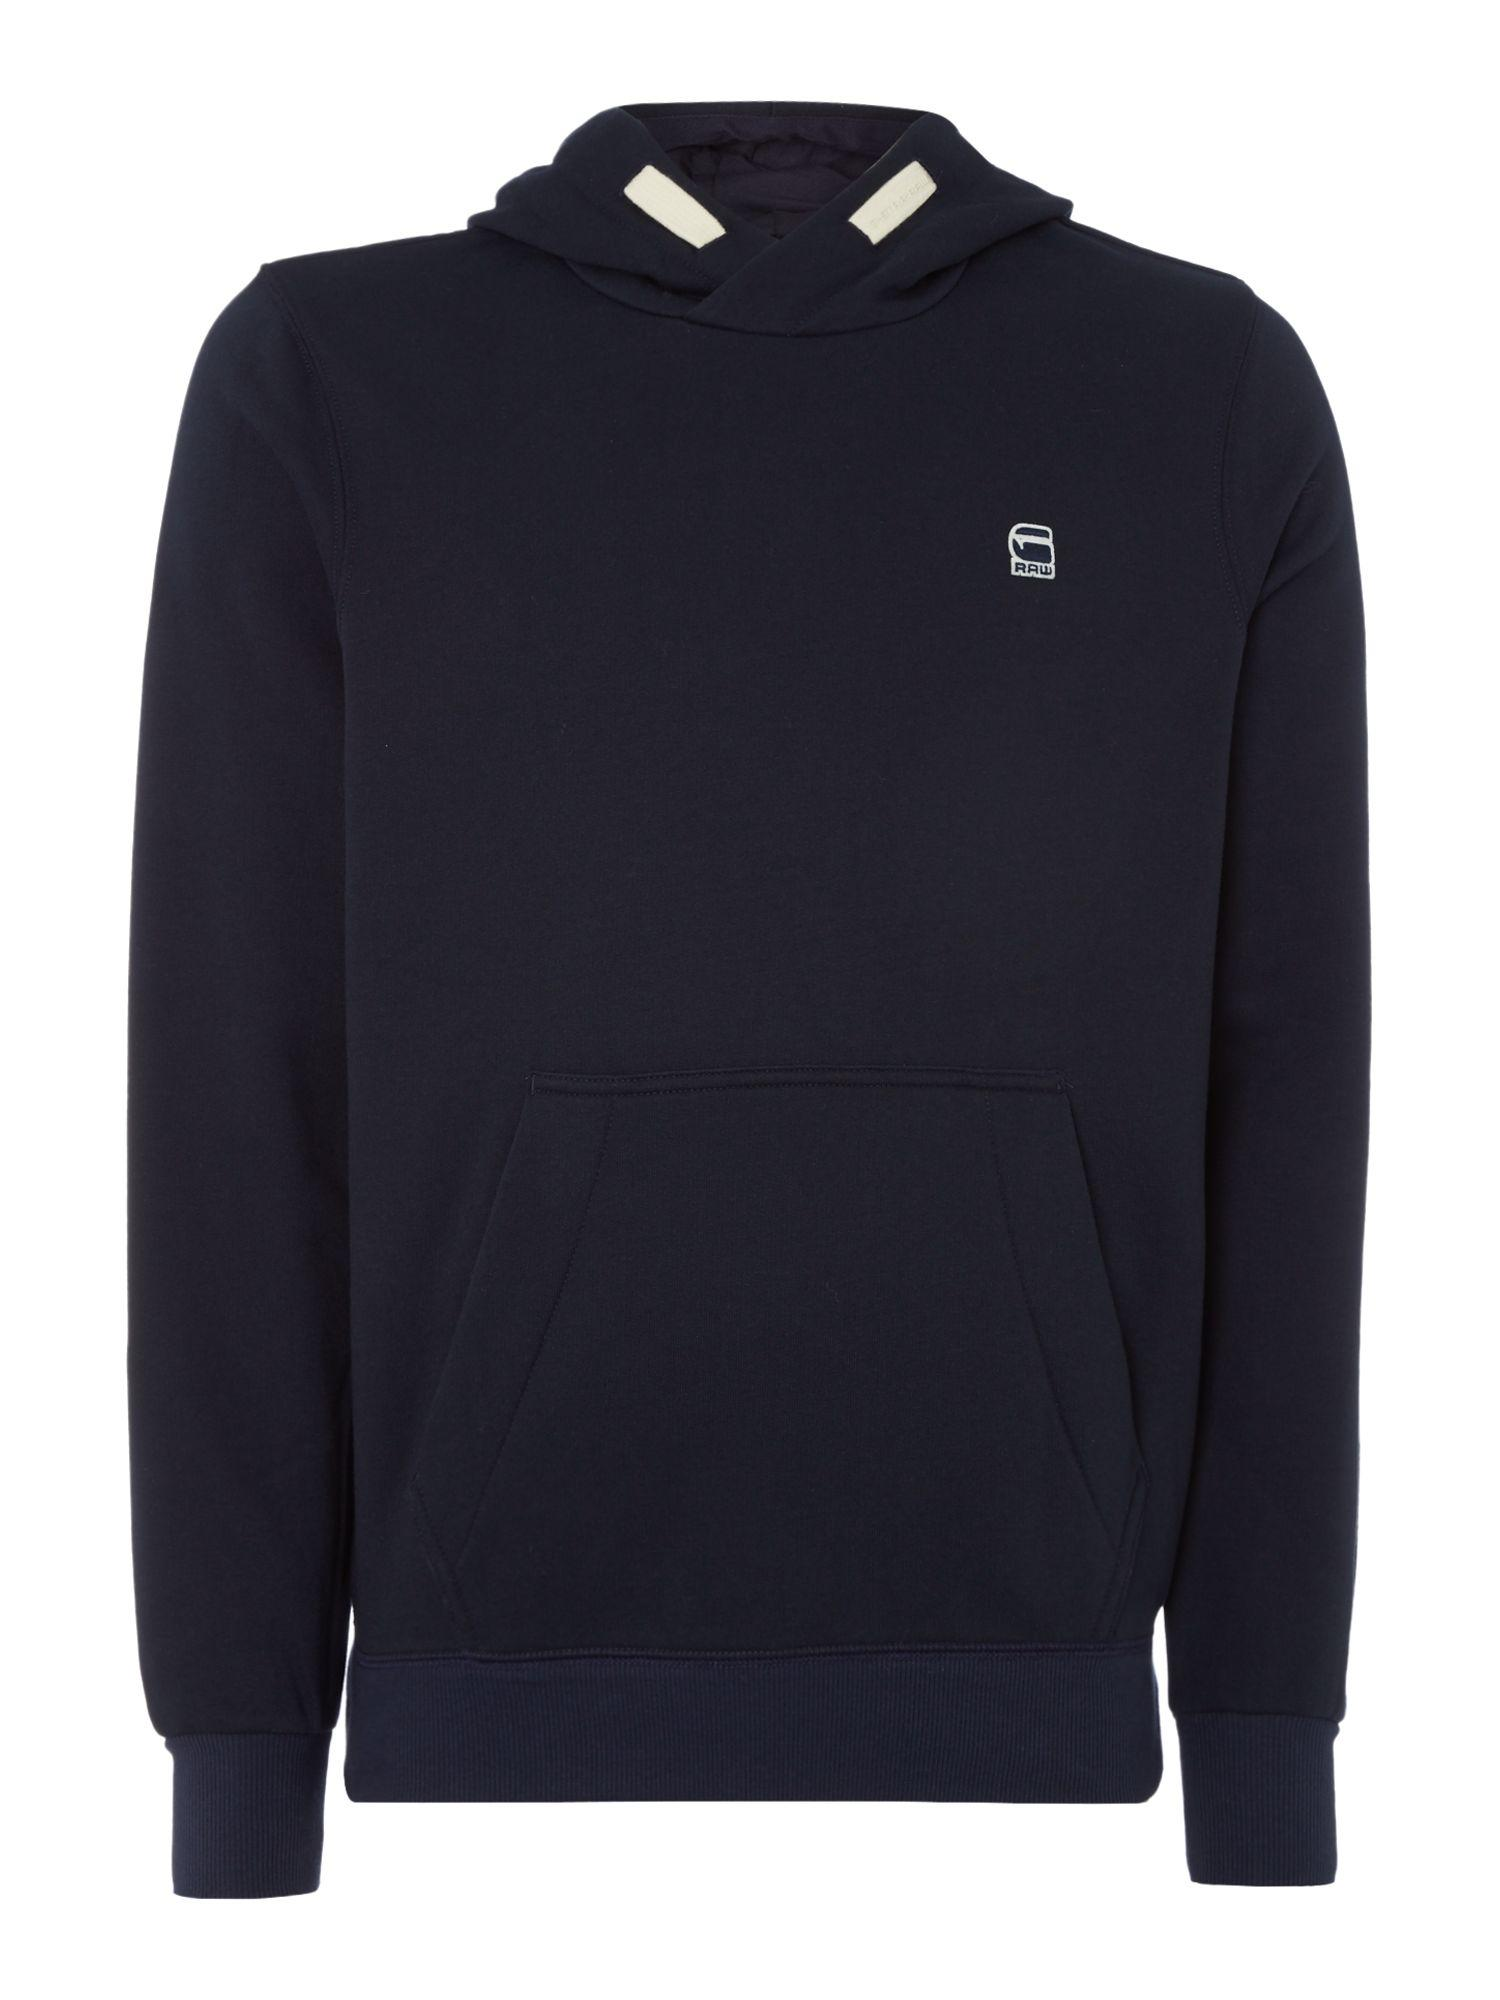 g star raw core hooded sweatshirt in blue for men lyst. Black Bedroom Furniture Sets. Home Design Ideas